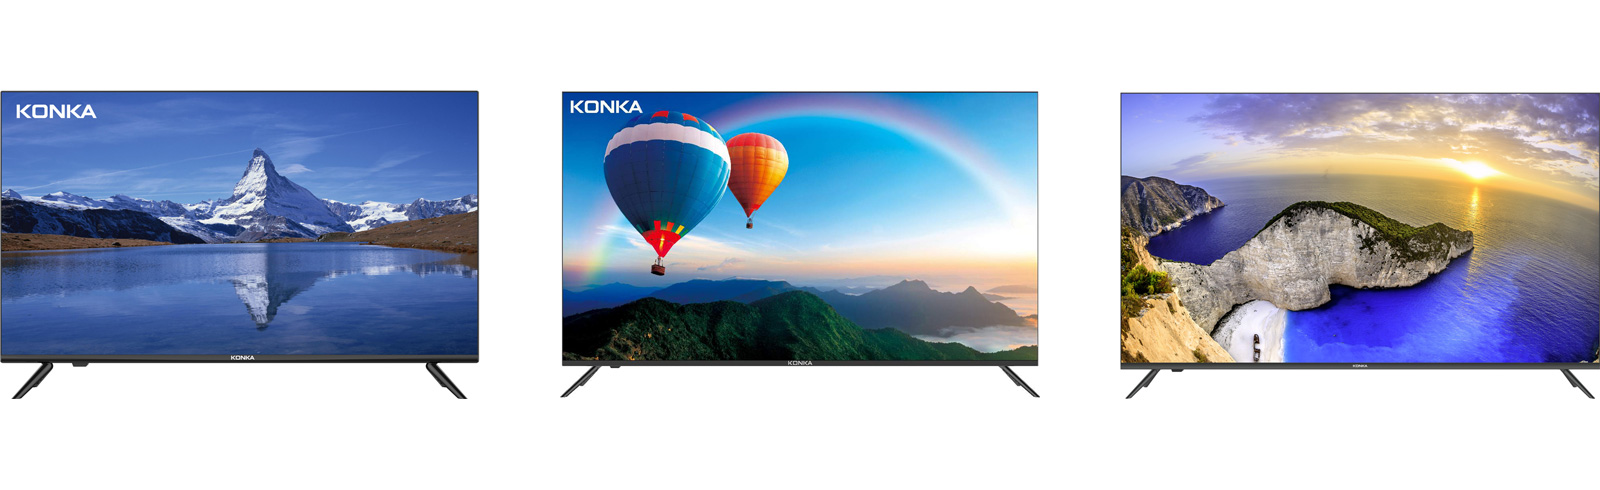 Konka made its NA debut with three TV series - H3, U5, and Q7 Pro